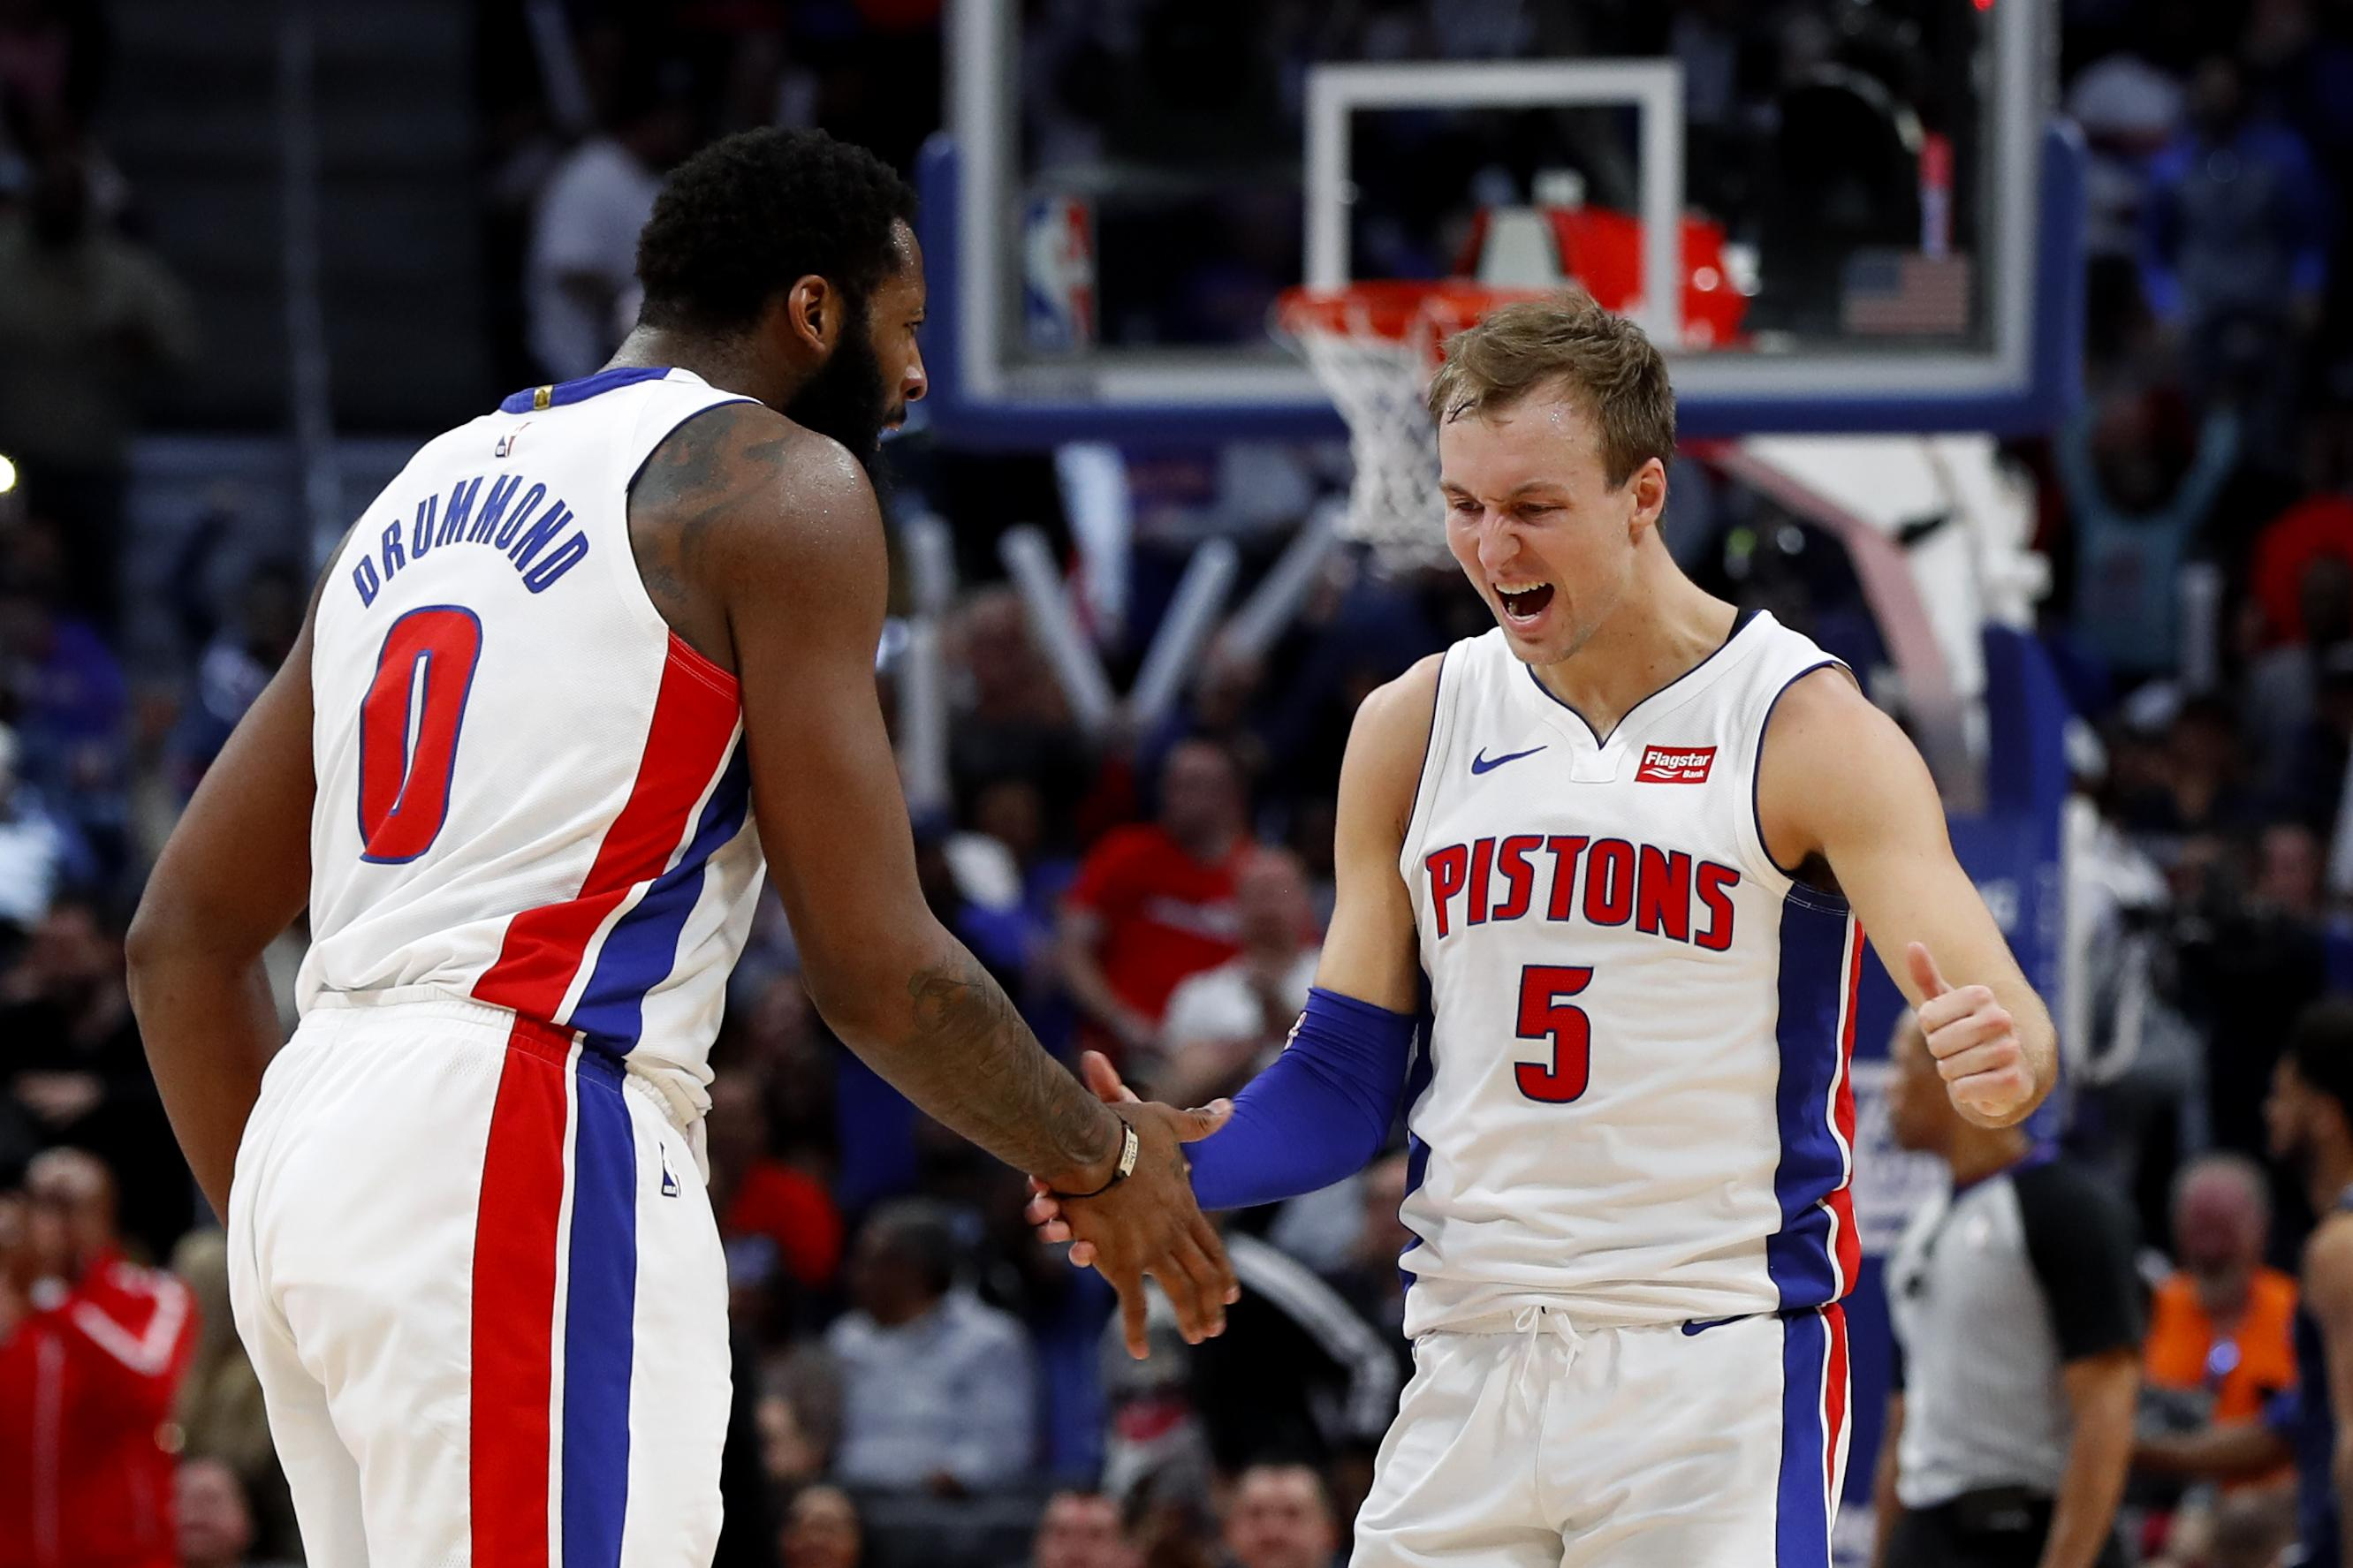 new styles 0555c efe7c NBA roundup: Pistons top Knicks 115-89, clinch final playoff ...